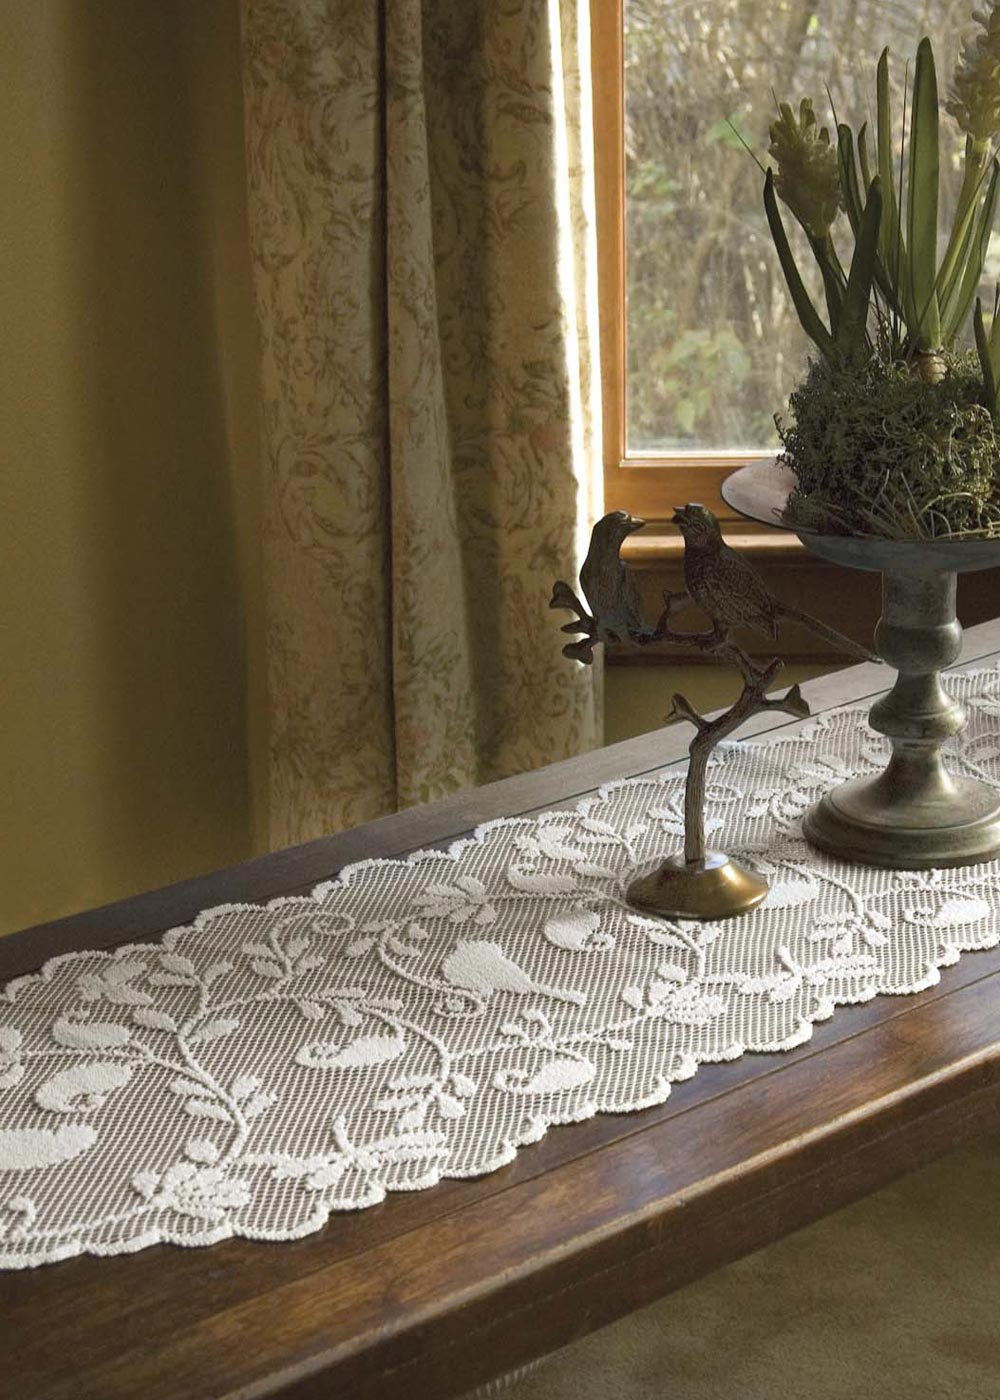 Beau Lace Table Runner Bird Song From Bristol Garden Collection Made In Usa    Heritage Lace